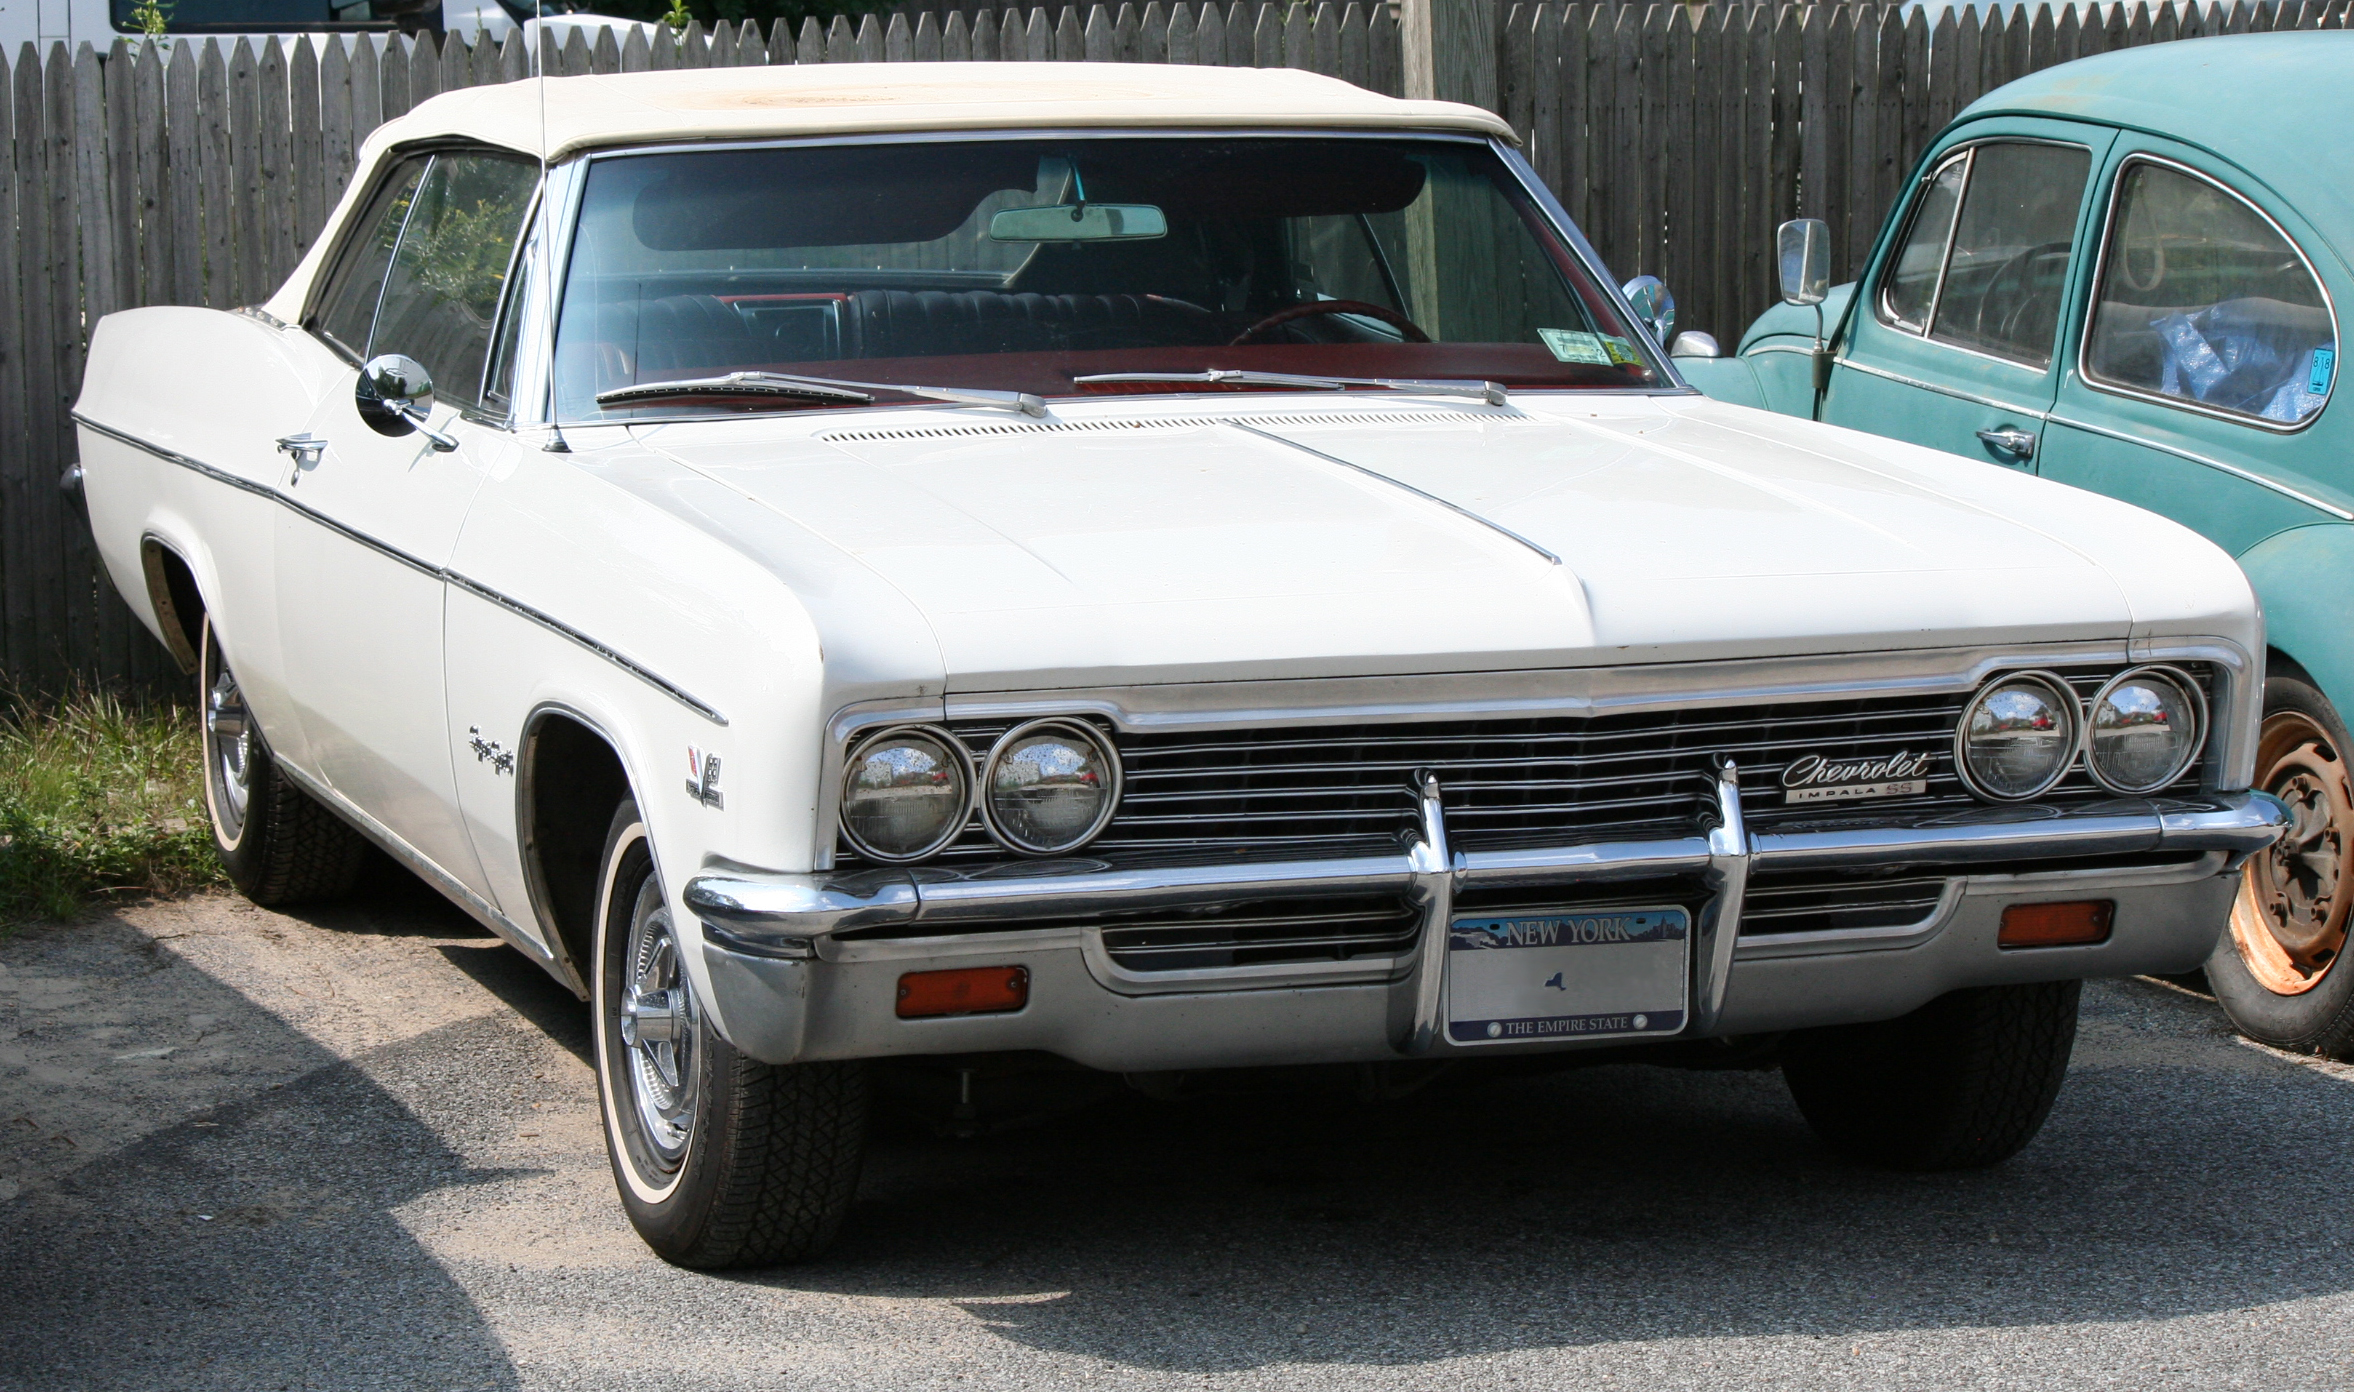 White_1966_Chevrolet_Impala_SS_Convertible file white 1966 chevrolet impala ss convertible jpg wikimedia 1966 chevy impala wiring diagram at alyssarenee.co